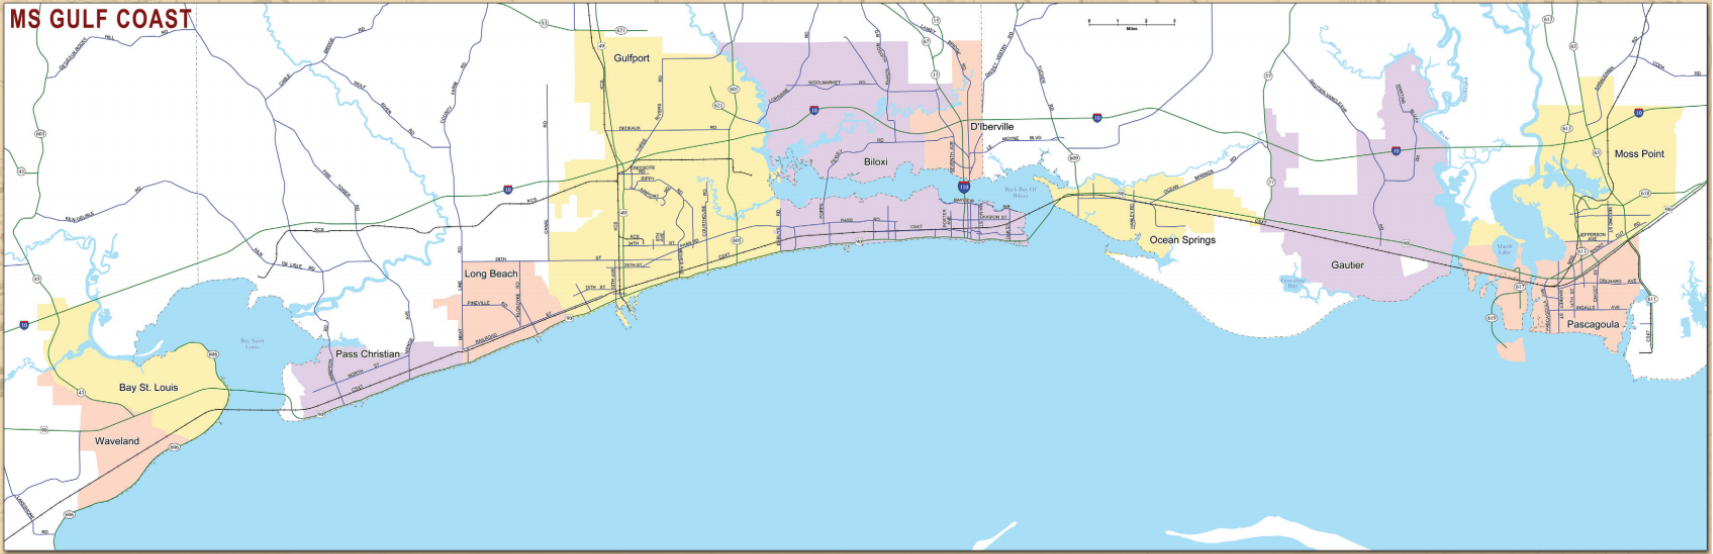 Rail Map MS Gulf Coast